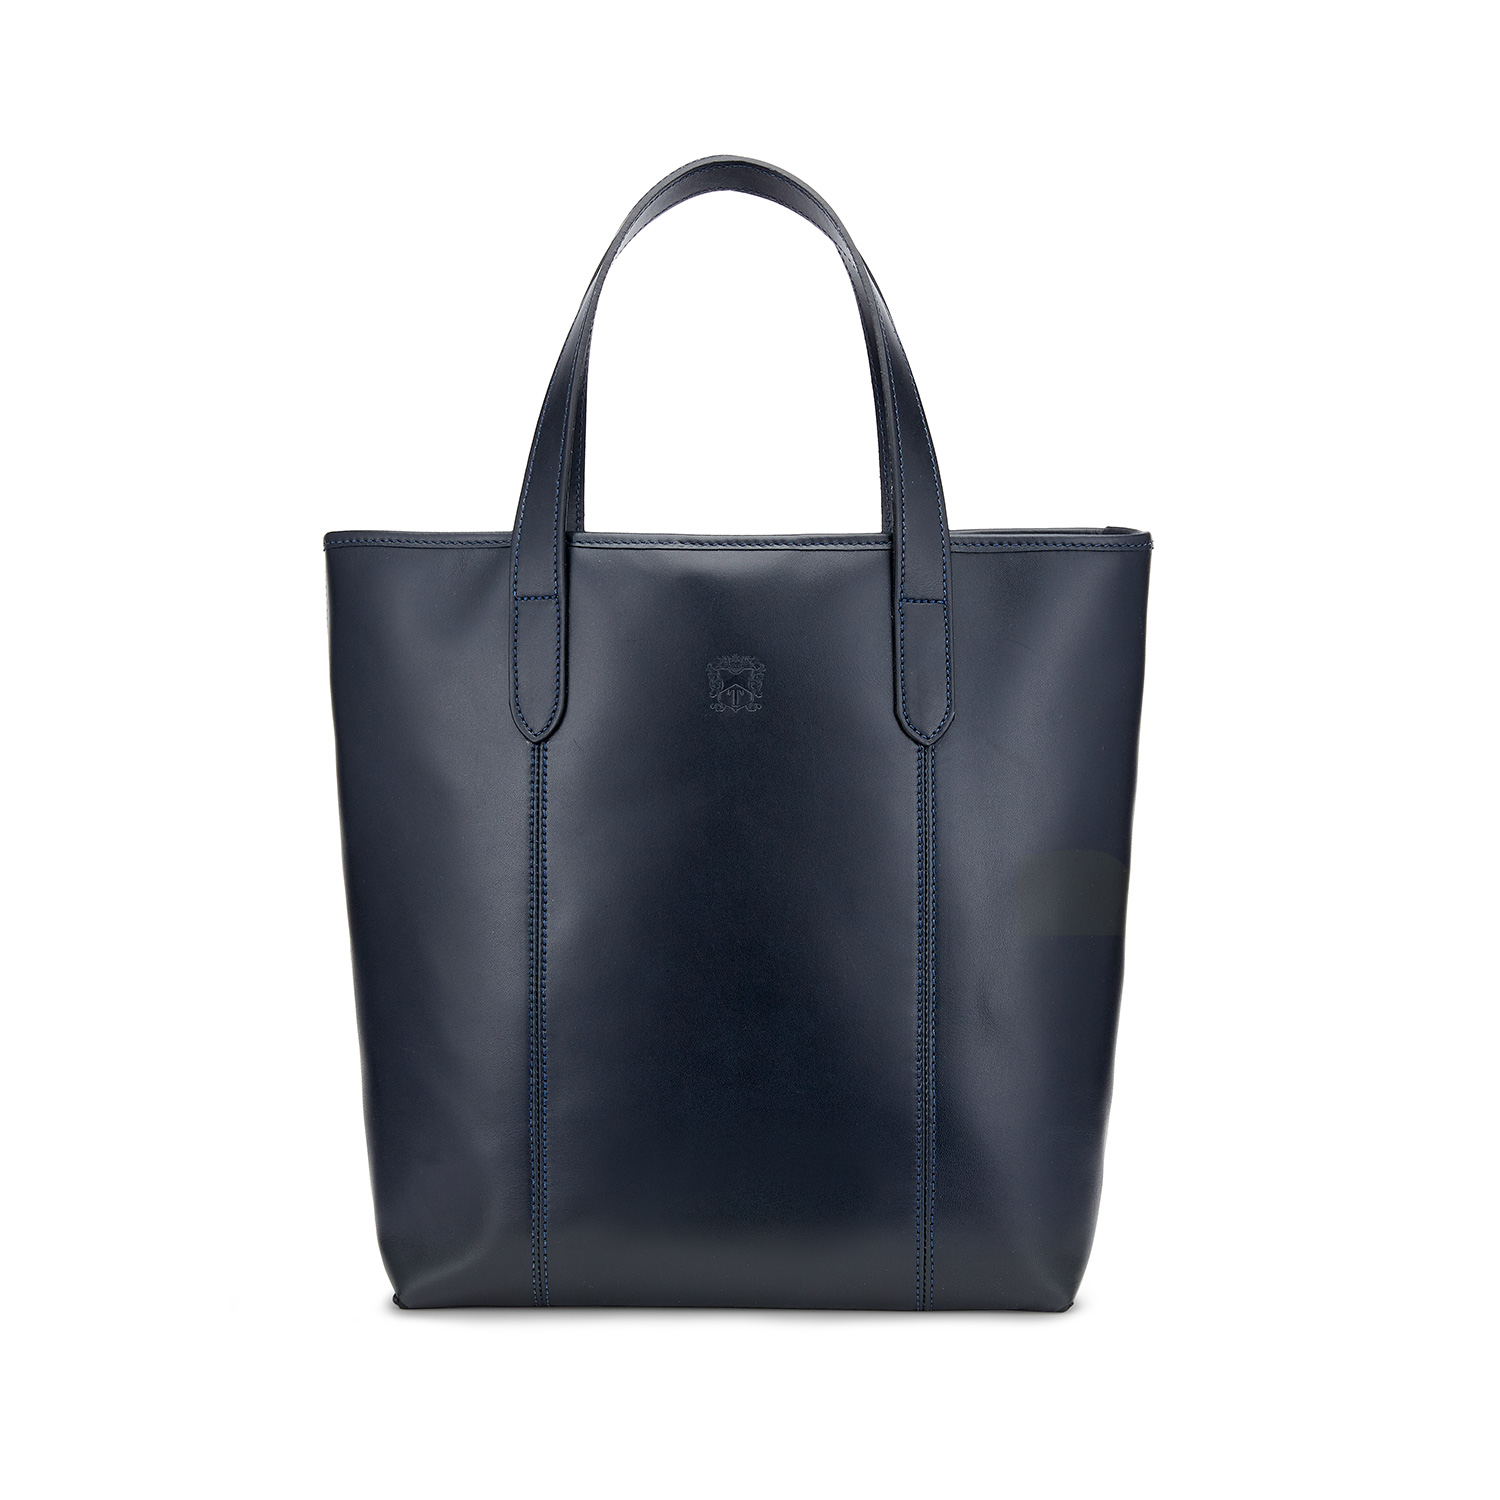 Tusting Leather Chelsea Tote Bag in Navy Front